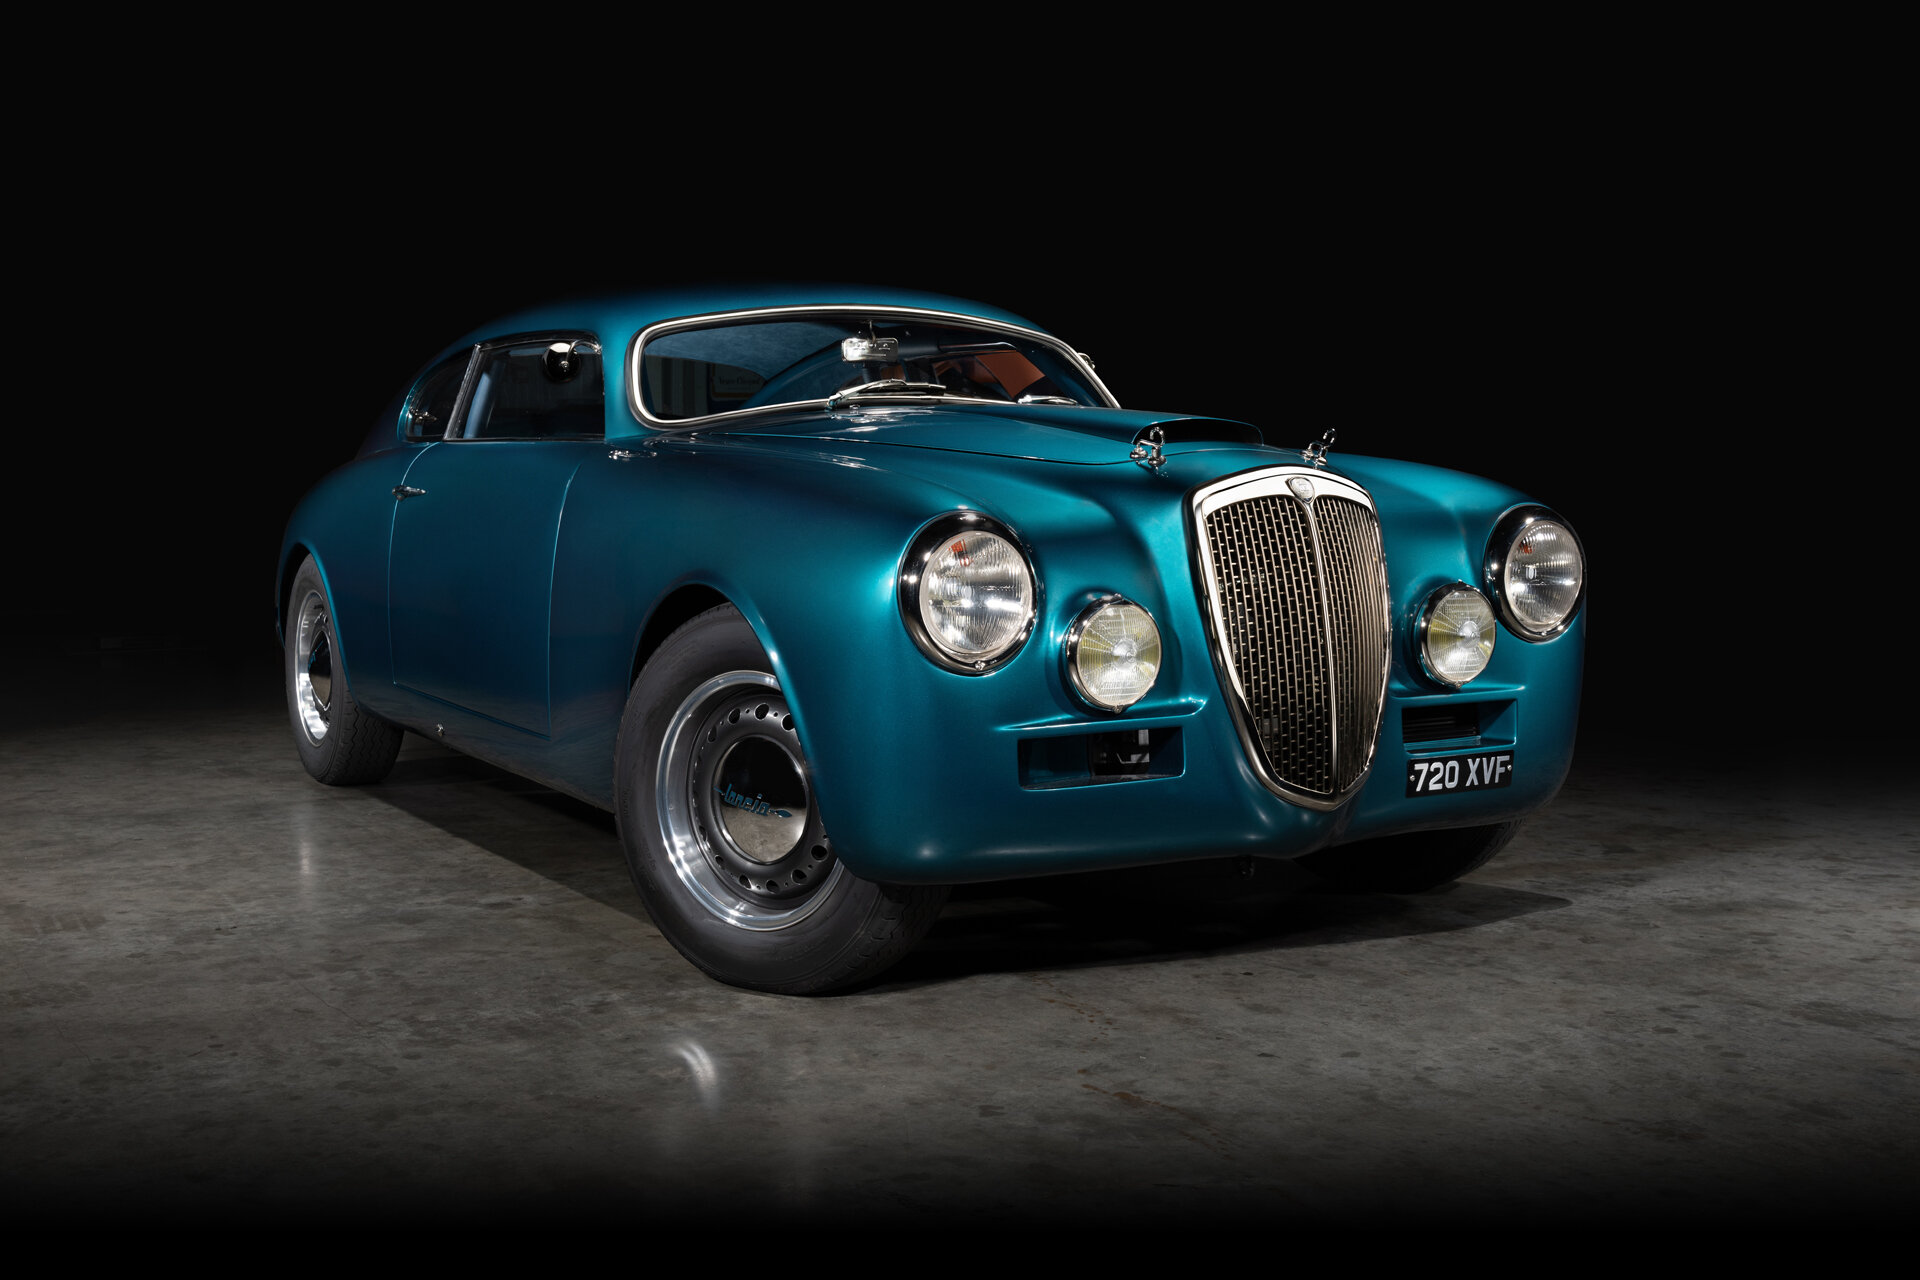 Lancia Aurelia 'Outlaw' front three quarter